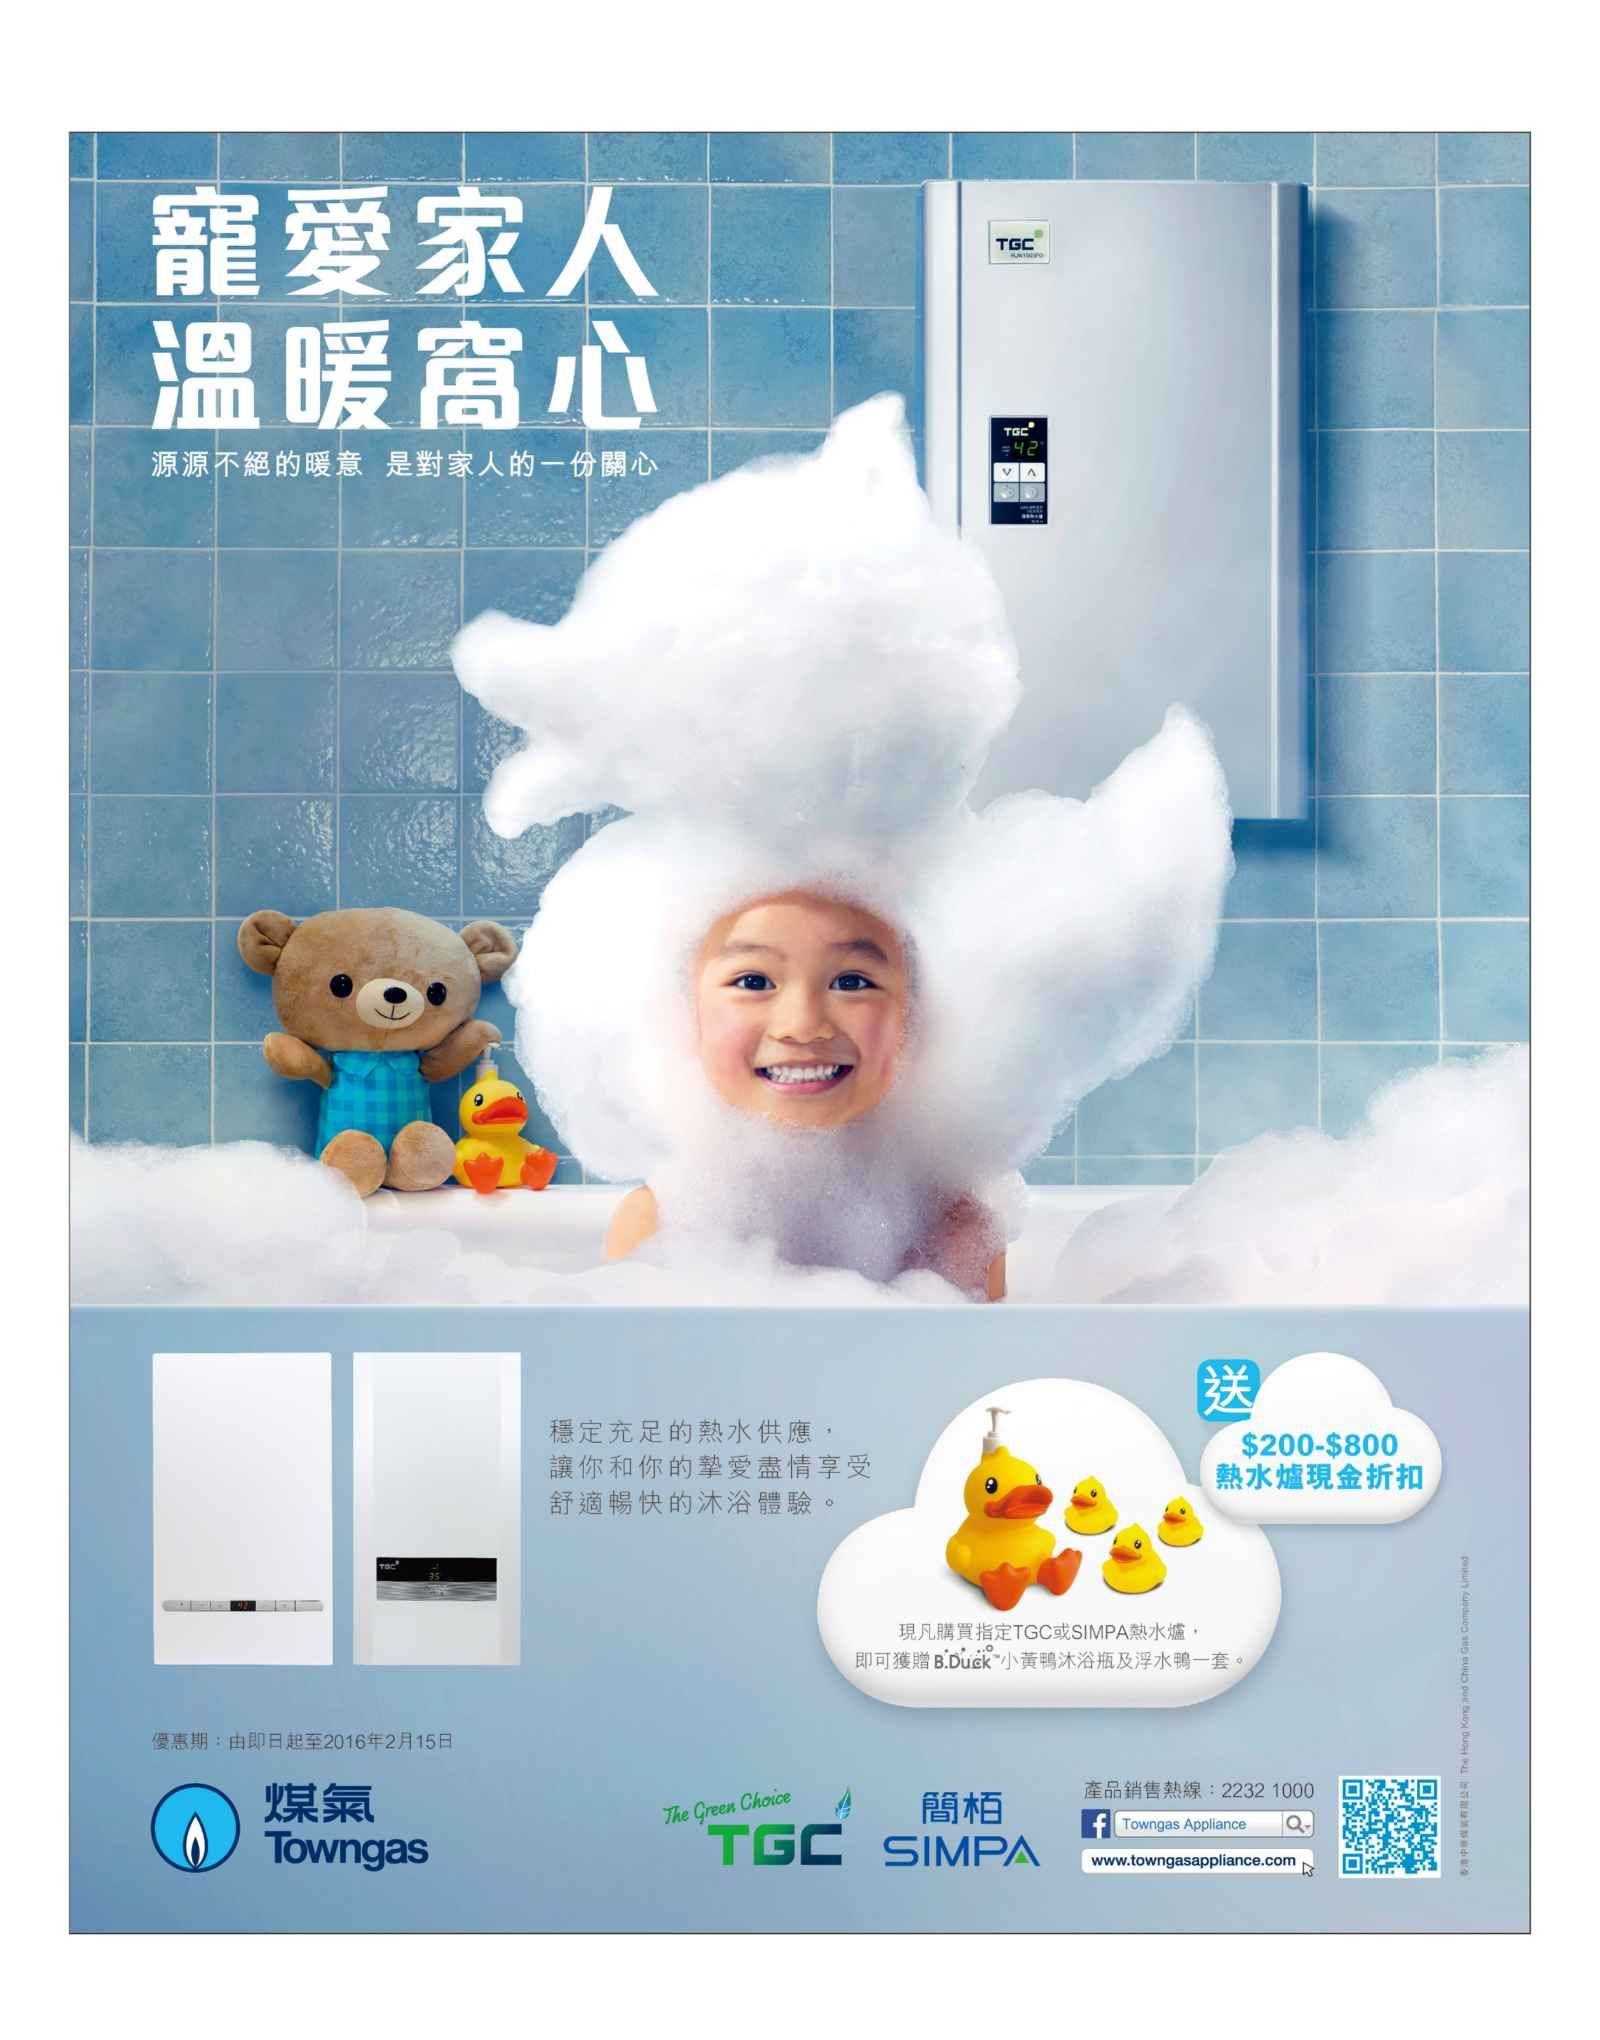 Towngas煤氣 | HK - Ad | Ad design, Print advertising, Ad layout